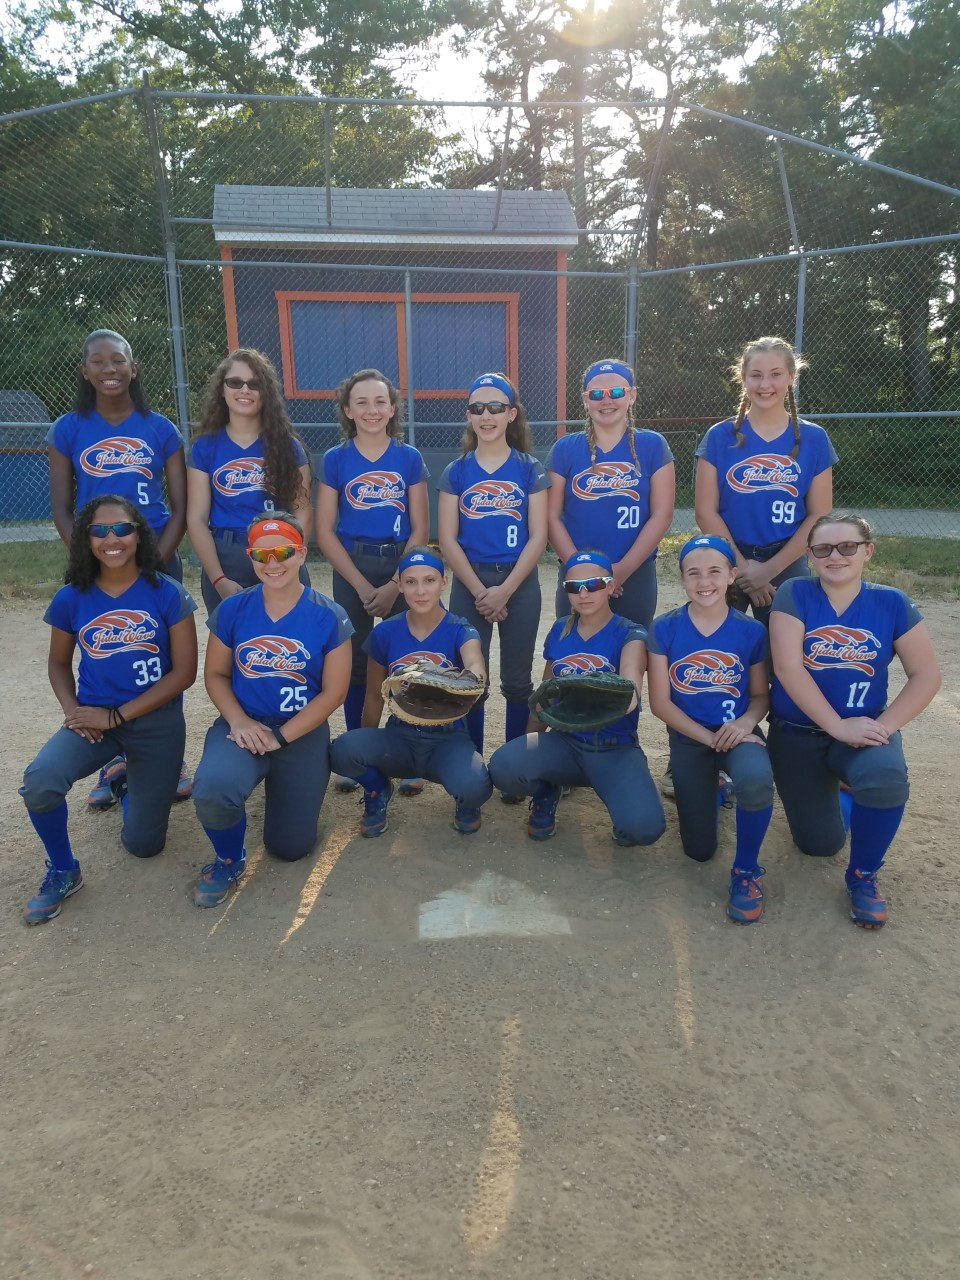 USSSA | Fastpitch Team: SJ Tidal wave - Millville, New Jersey | Home